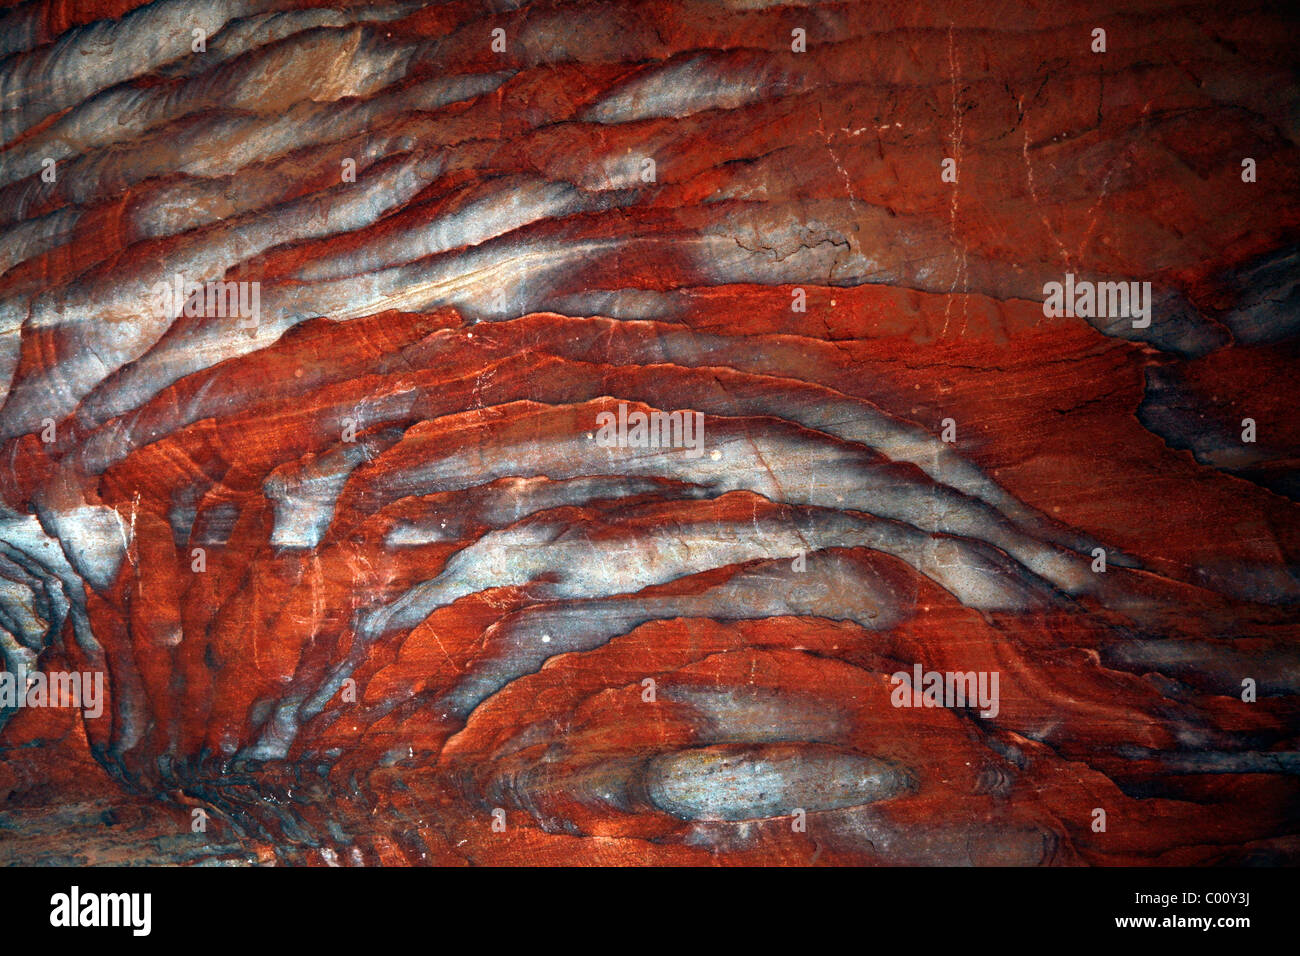 Detail of a colorful sandstone, Petra, Jordan. - Stock Image